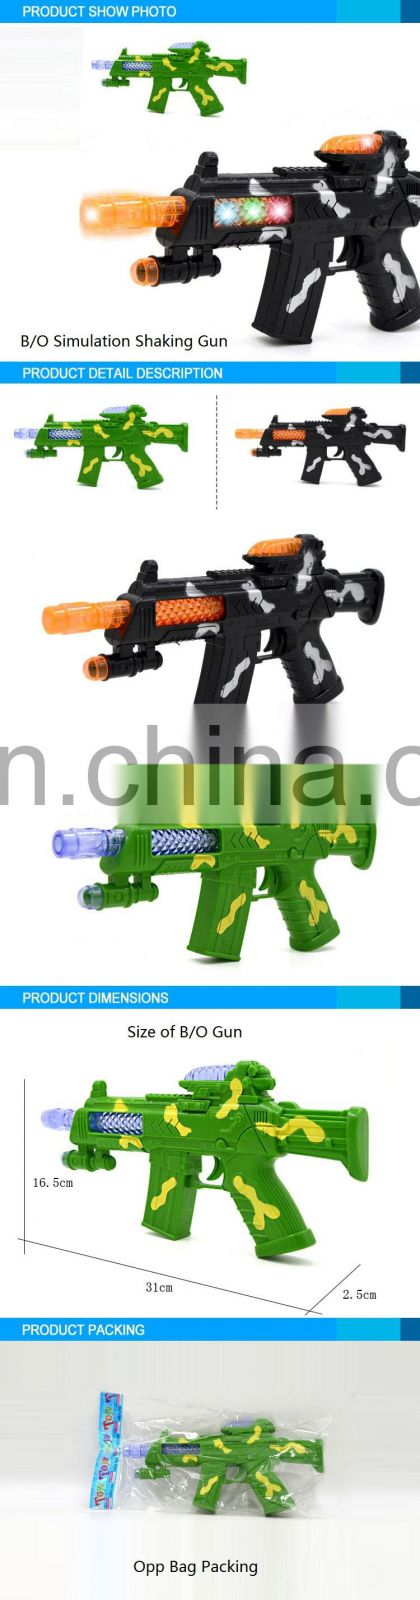 Kids 2016 fashional series B/O Simulation shaking gun toys